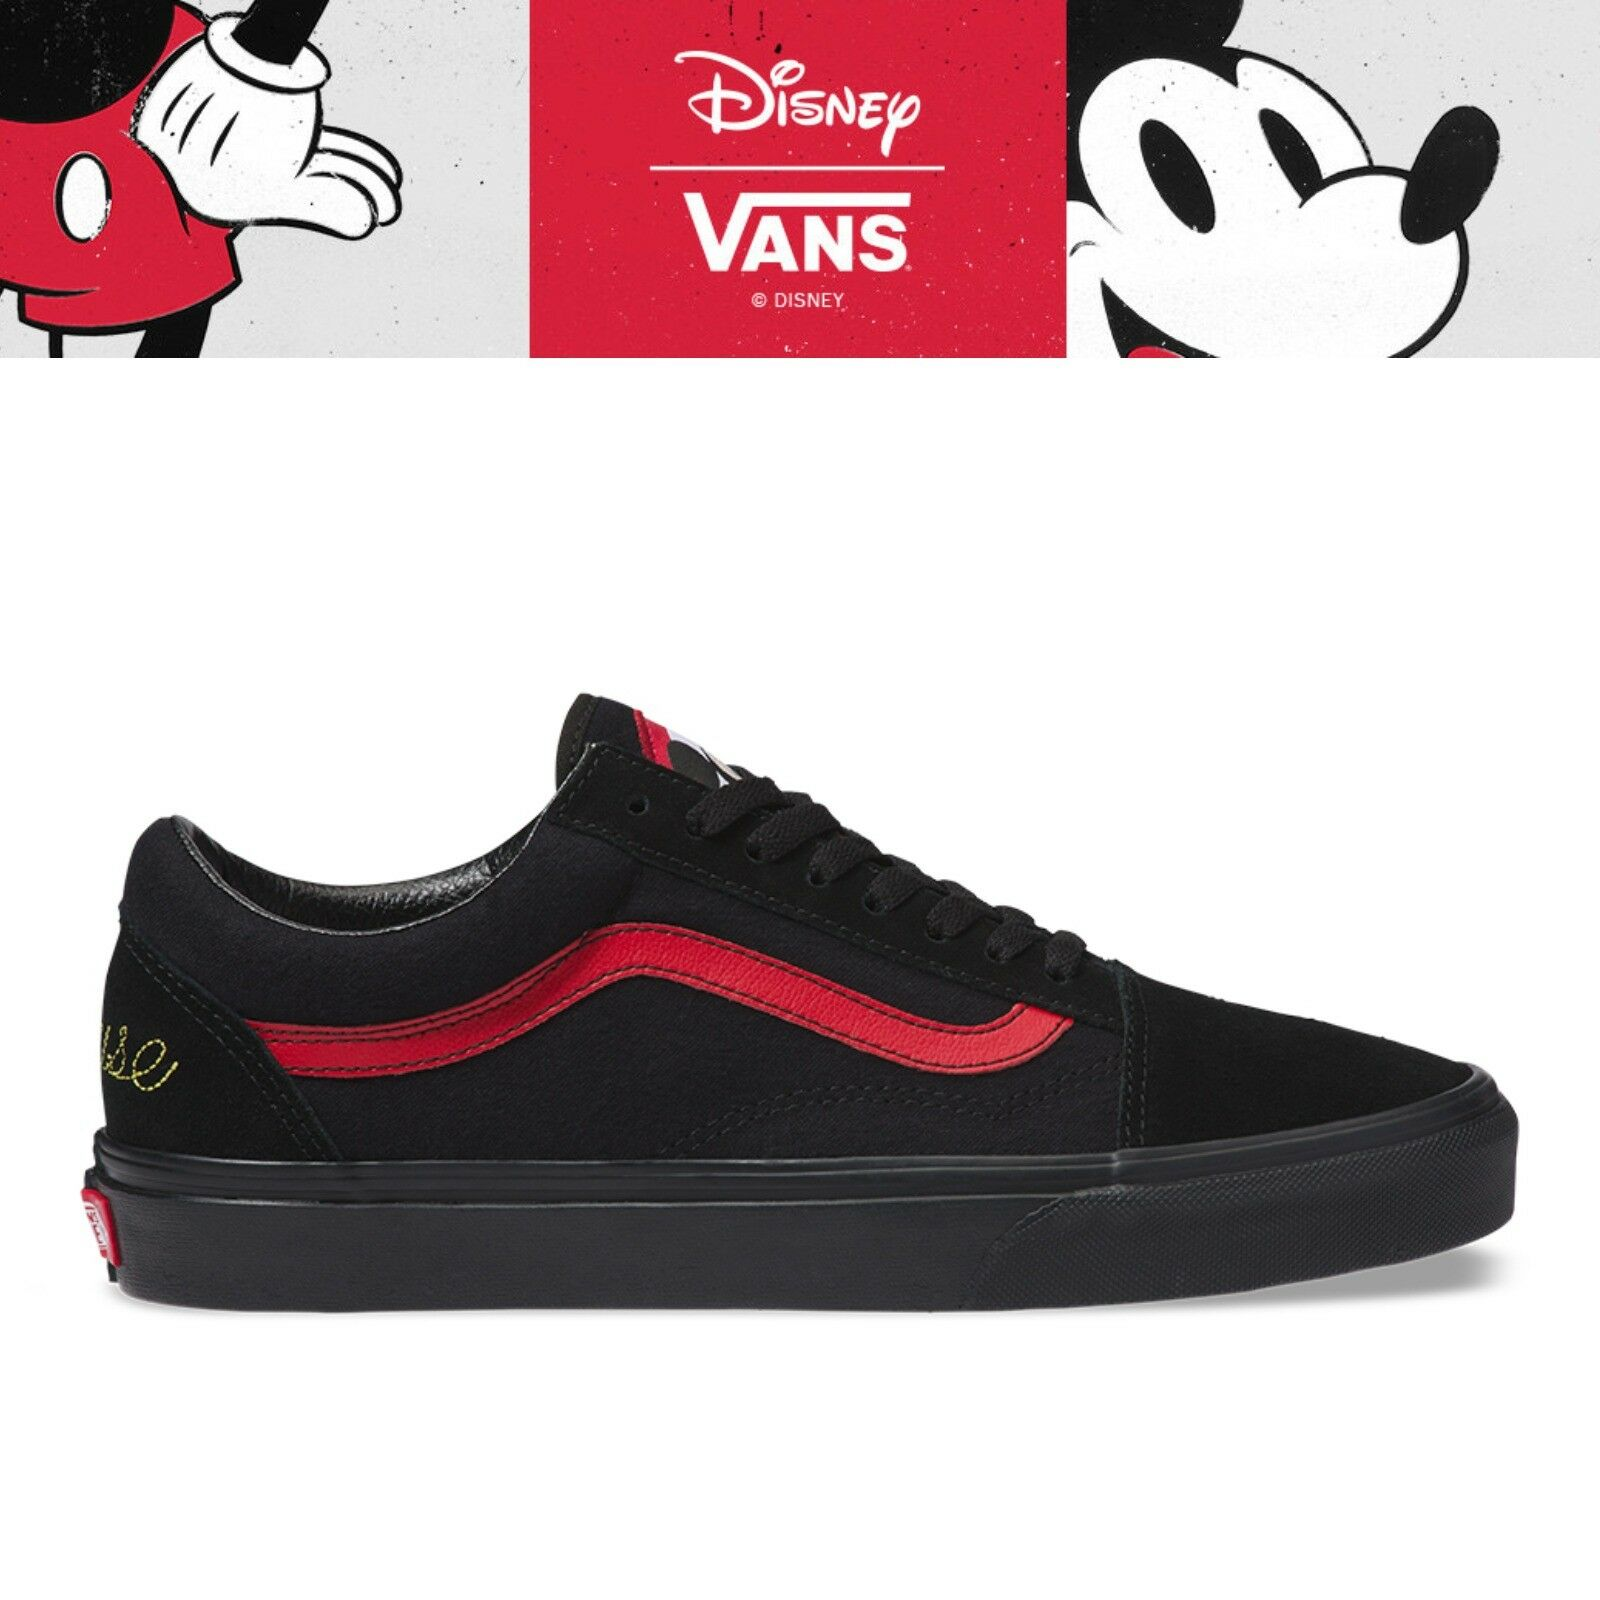 New VANS X DISNEY Old Skool Mickey Mouse 90th Collection Unisex Sneakers - Black